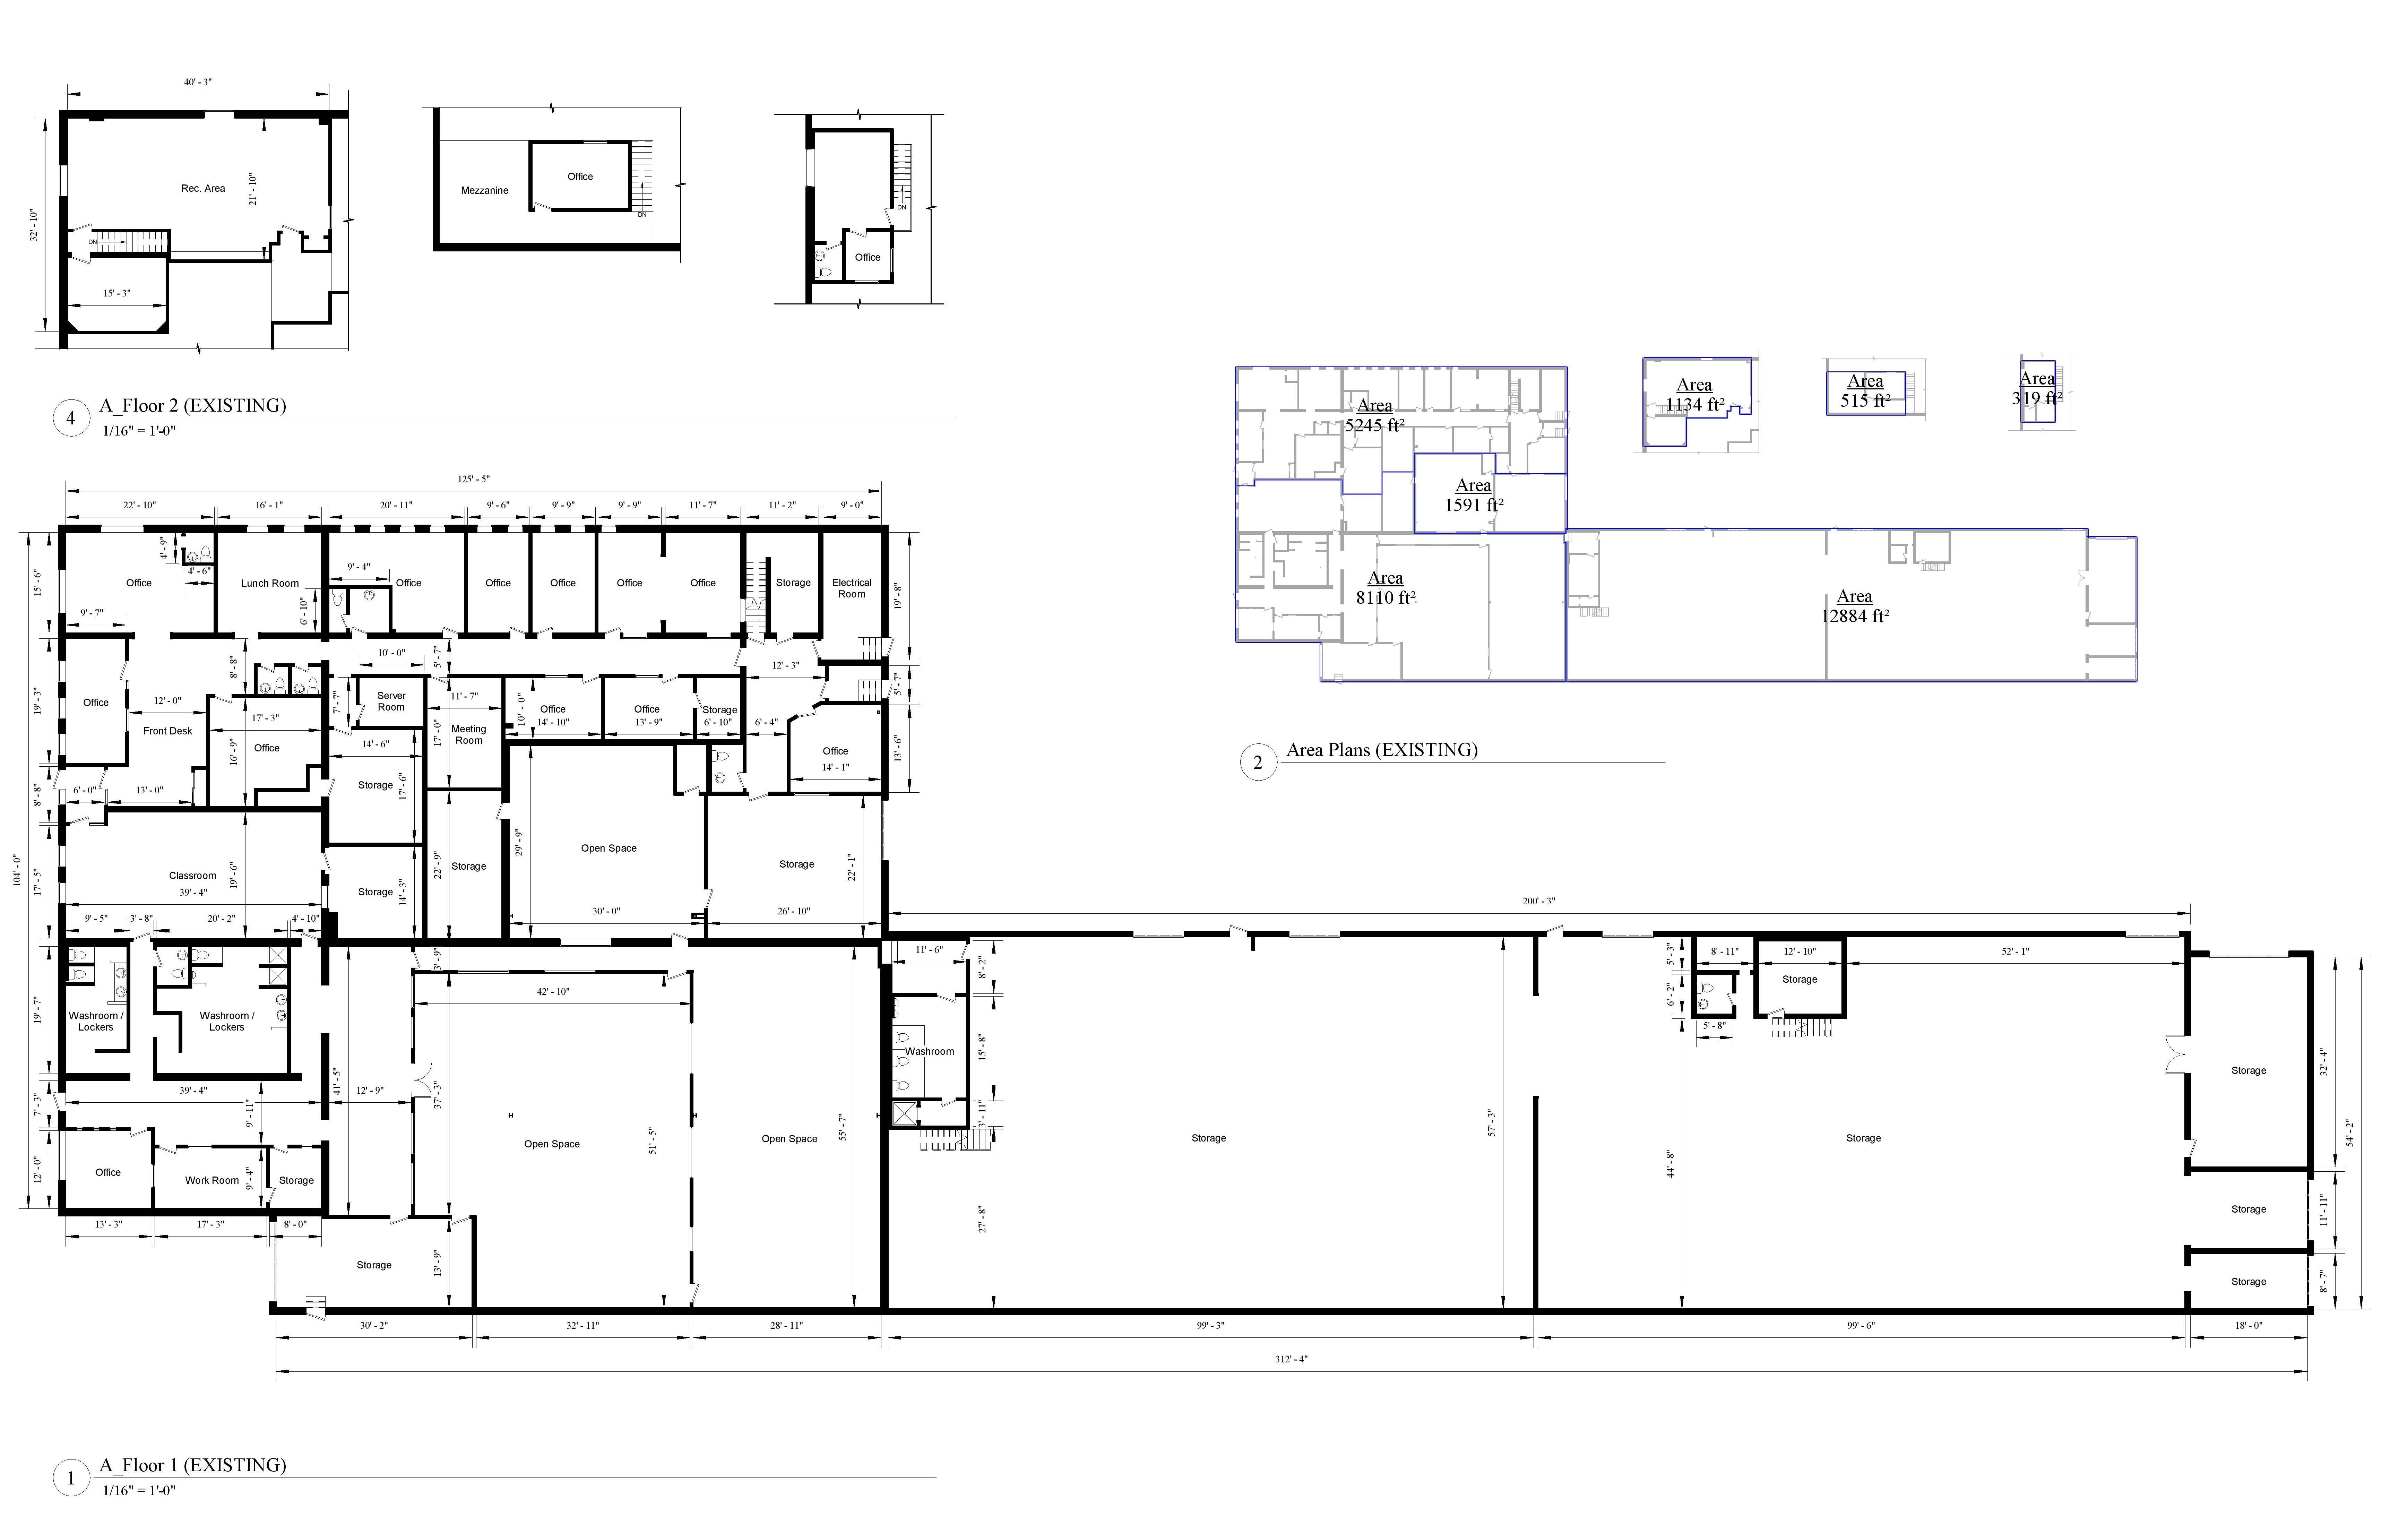 an AutoCad drawing of the floor plan and the Area Analysis plan for an over thirty thousand square foot industrial building.